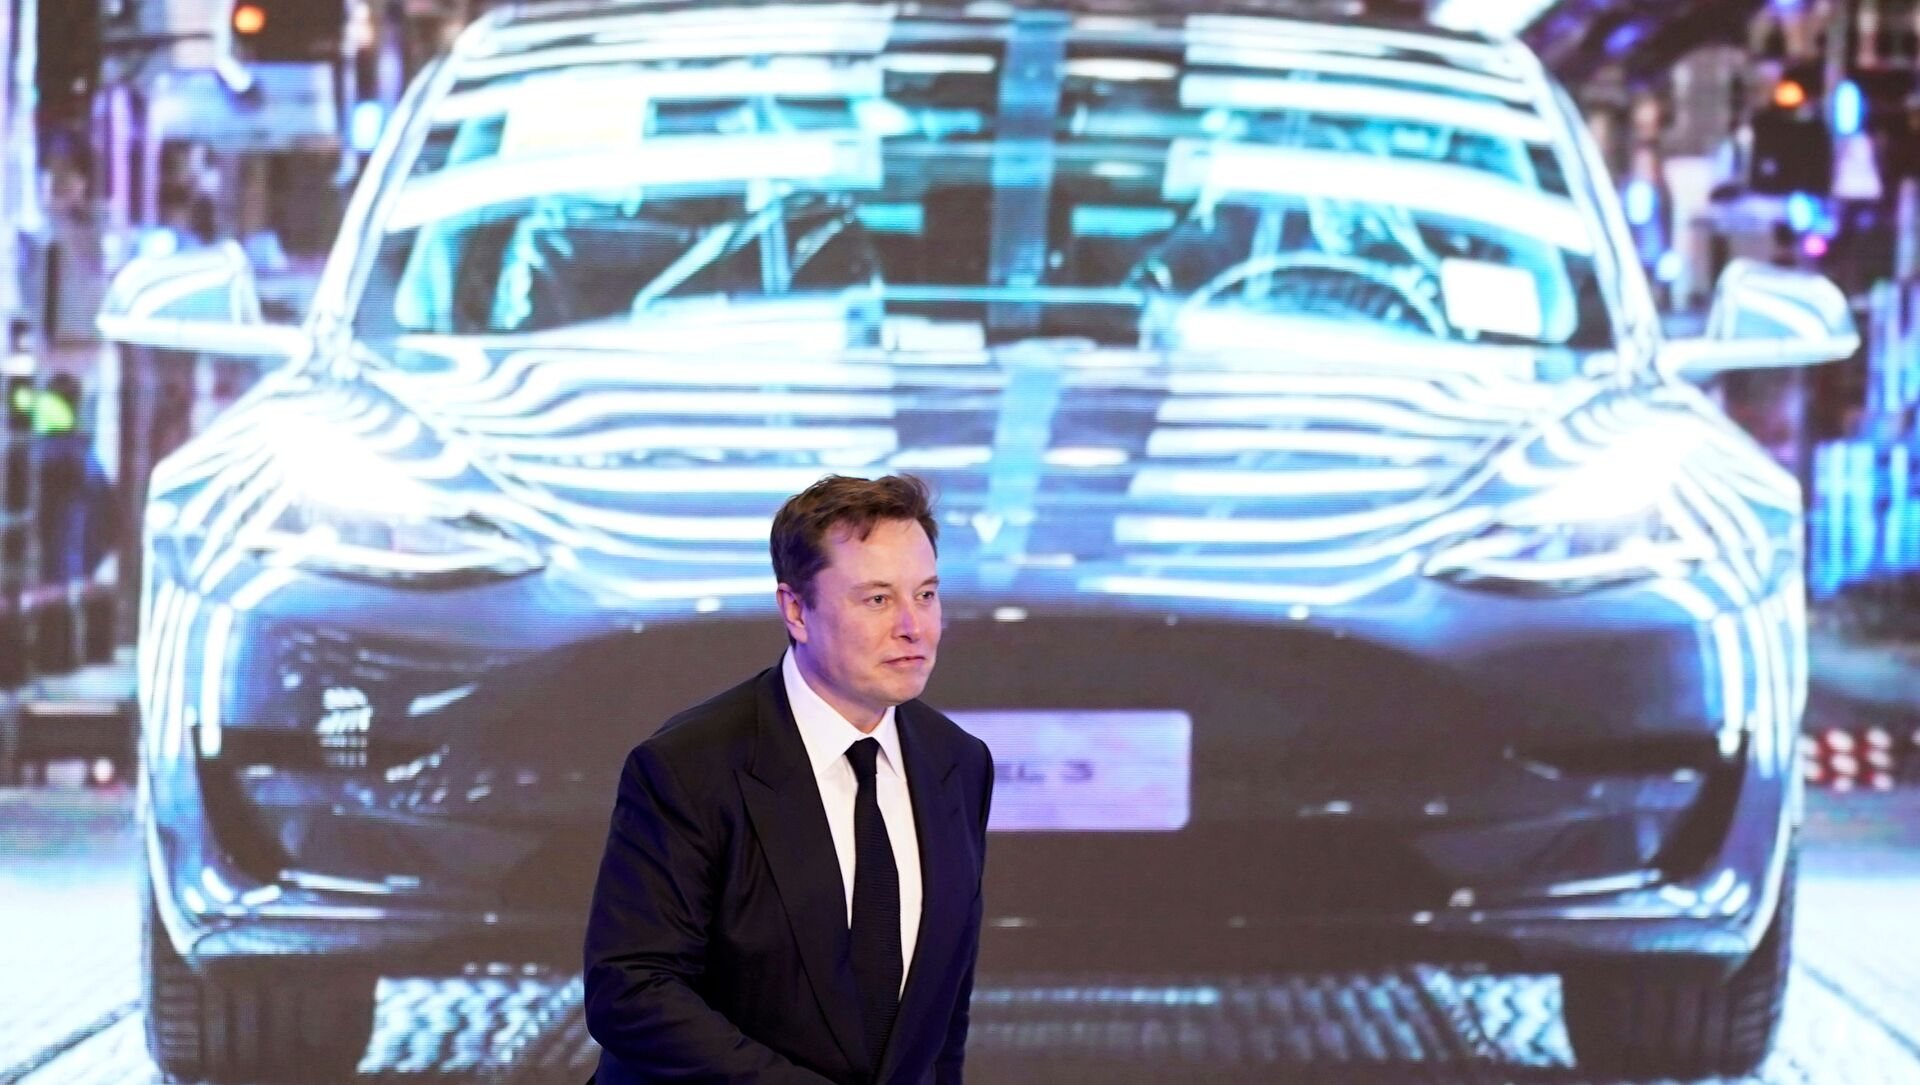 Tesla Inc CEO Elon Musk walks next to a screen showing an image of Tesla Model 3 car during an opening ceremony for Tesla China-made Model Y program in Shanghai, China January 7, 2020. - Sputnik International, 1920, 24.07.2021